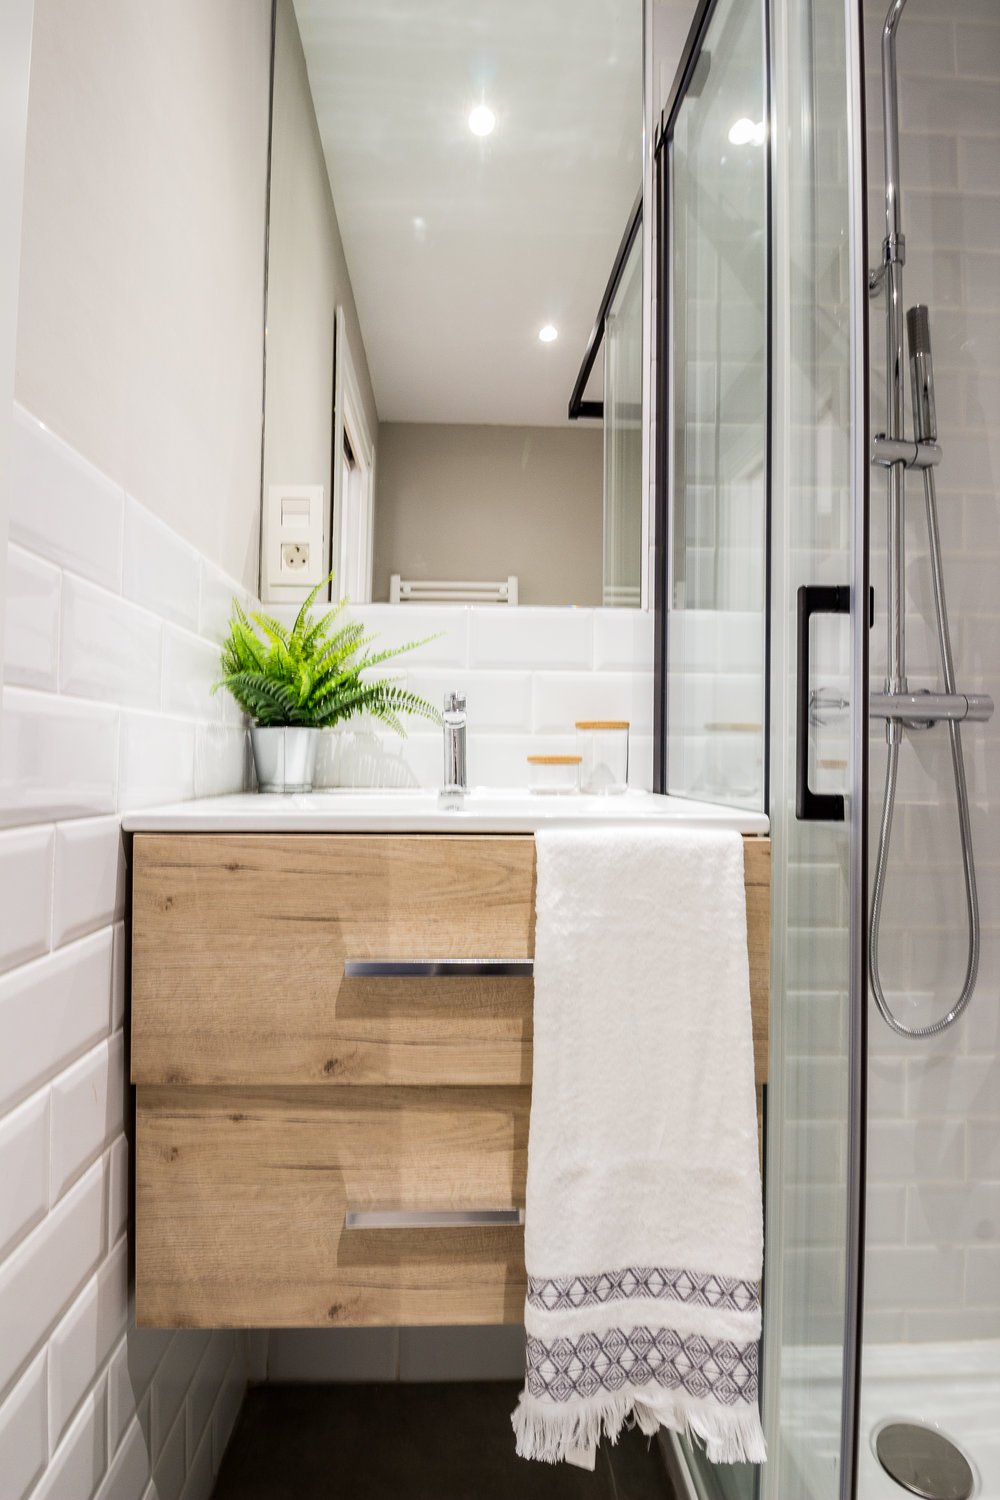 Staged4more Staged Home Tour A Young and Fresh Rental Apartment in Spain Afer Bathroom.jpg